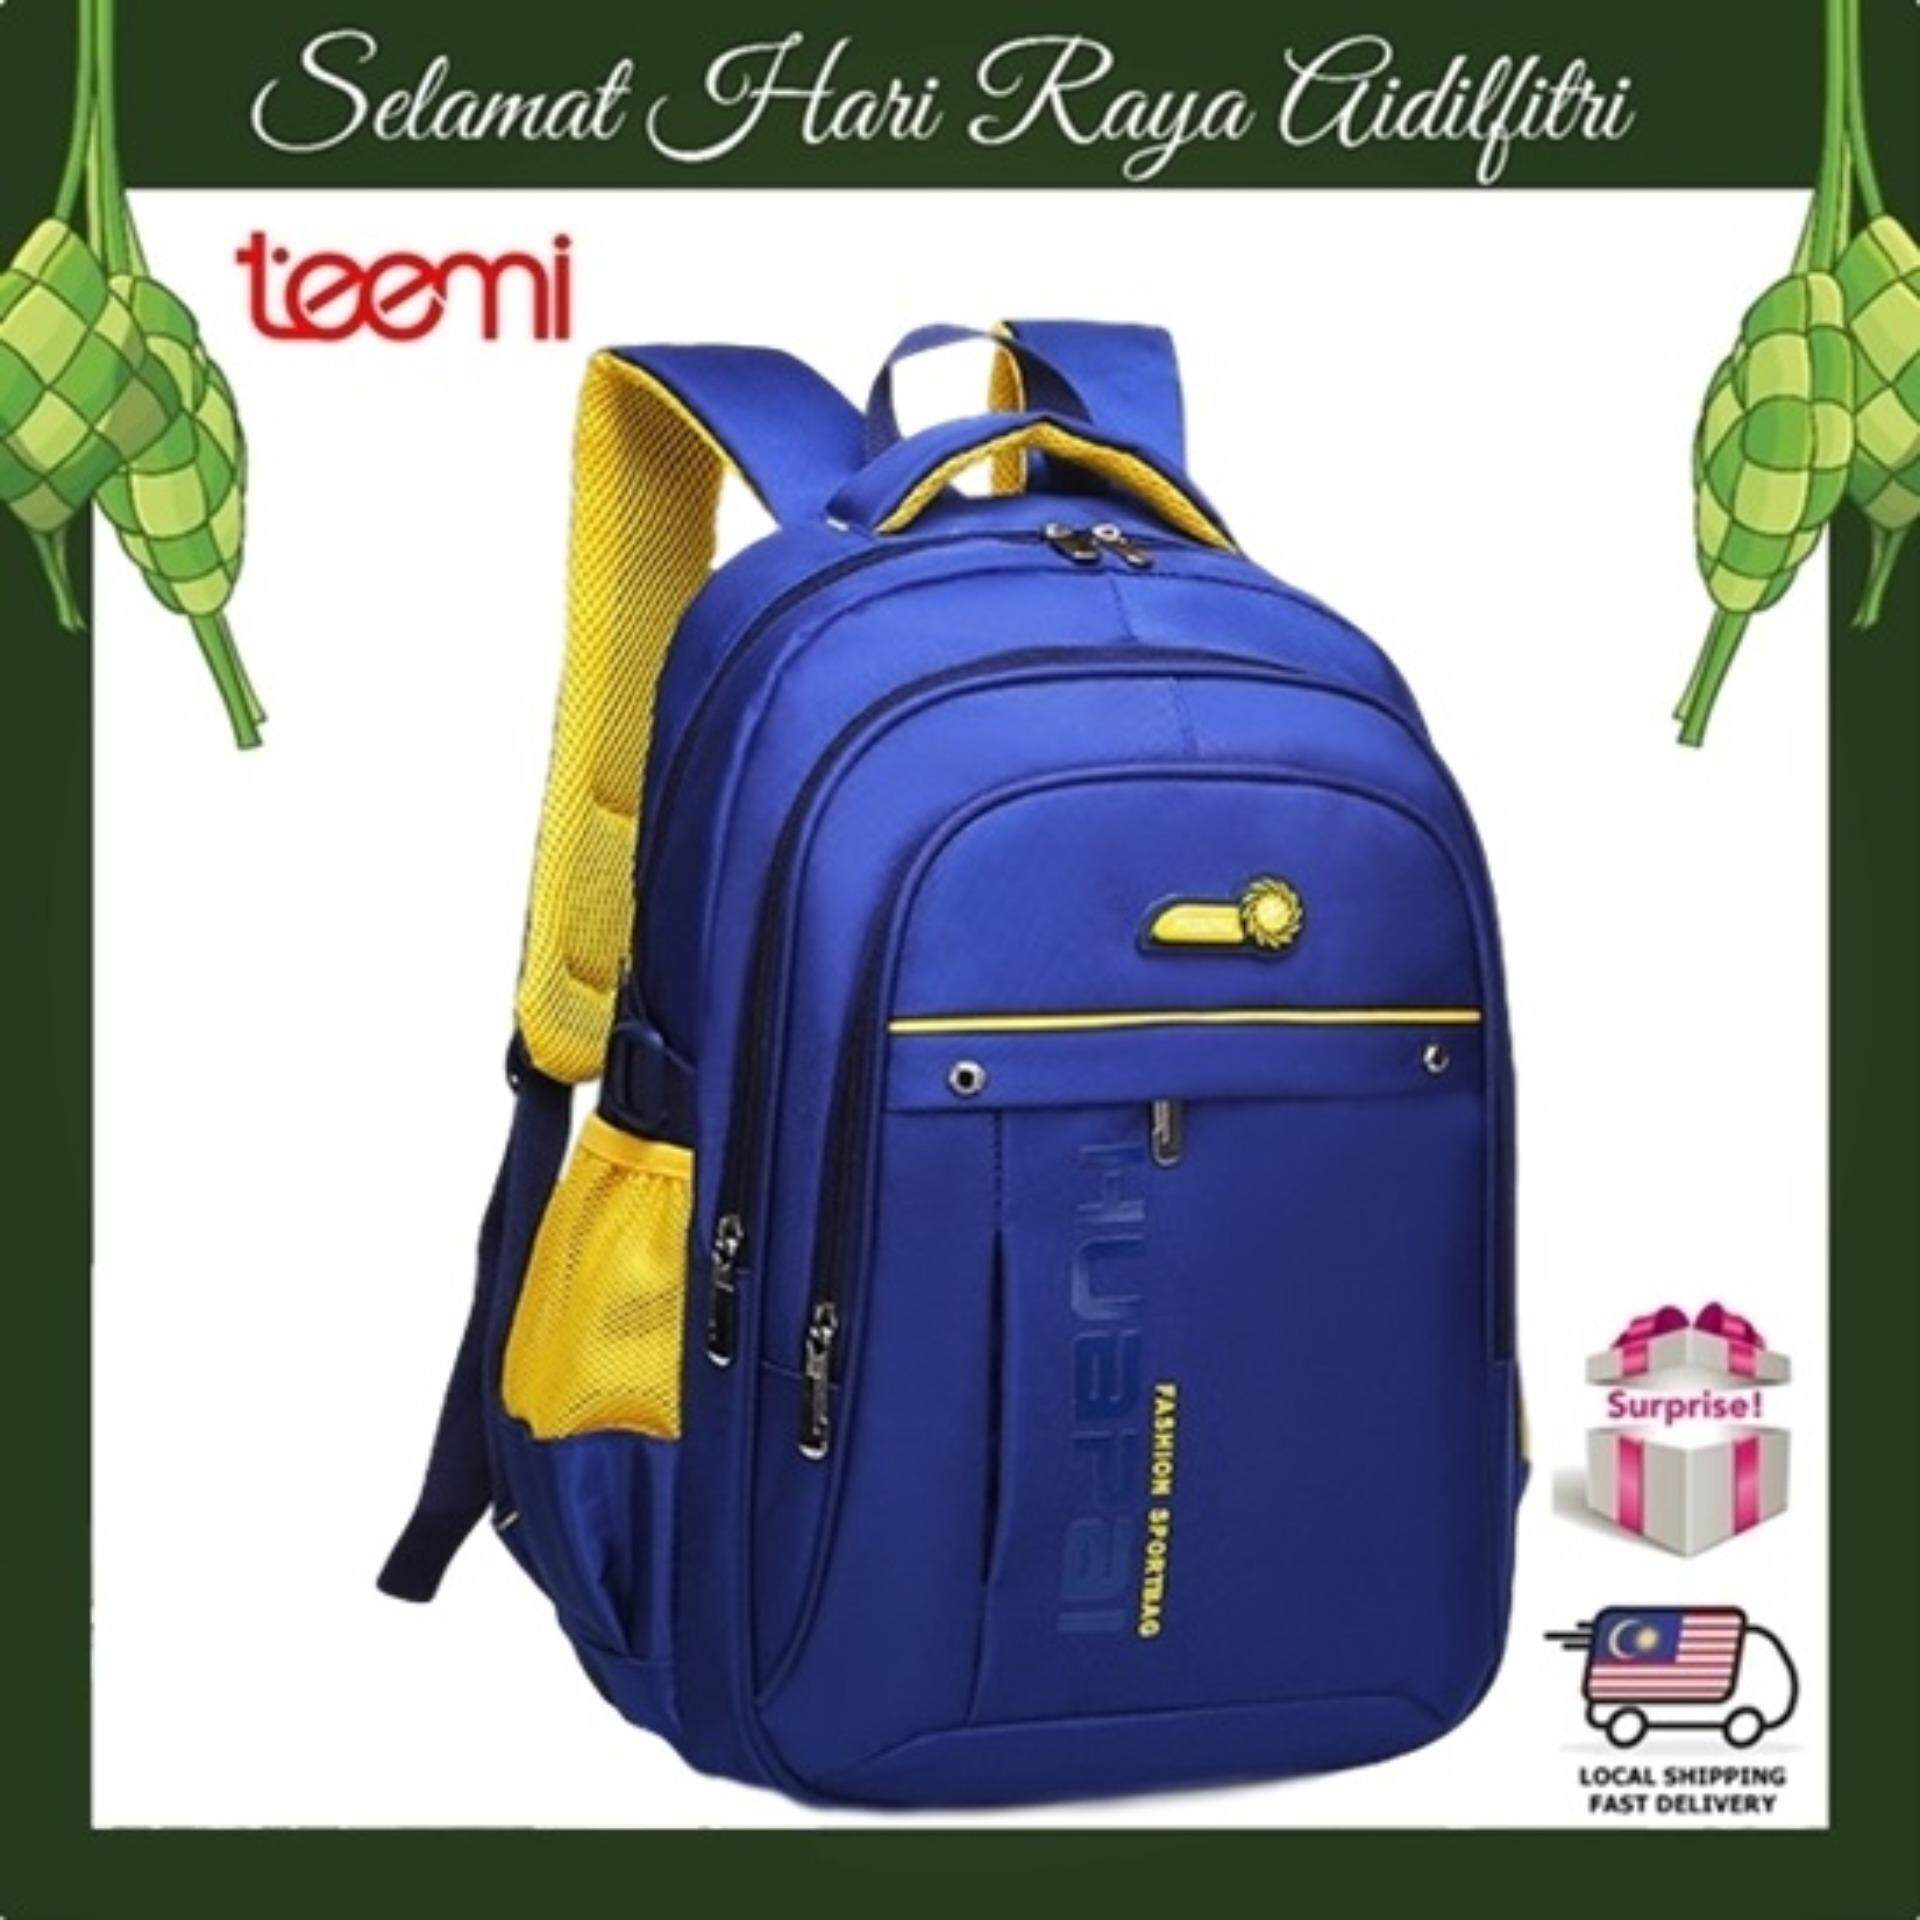 【TEEMI】Two Tone Bright Color Primary Secondary Nylon Water Resistant Orthopedic School Bag Kids Children Backpack - Dark Blue